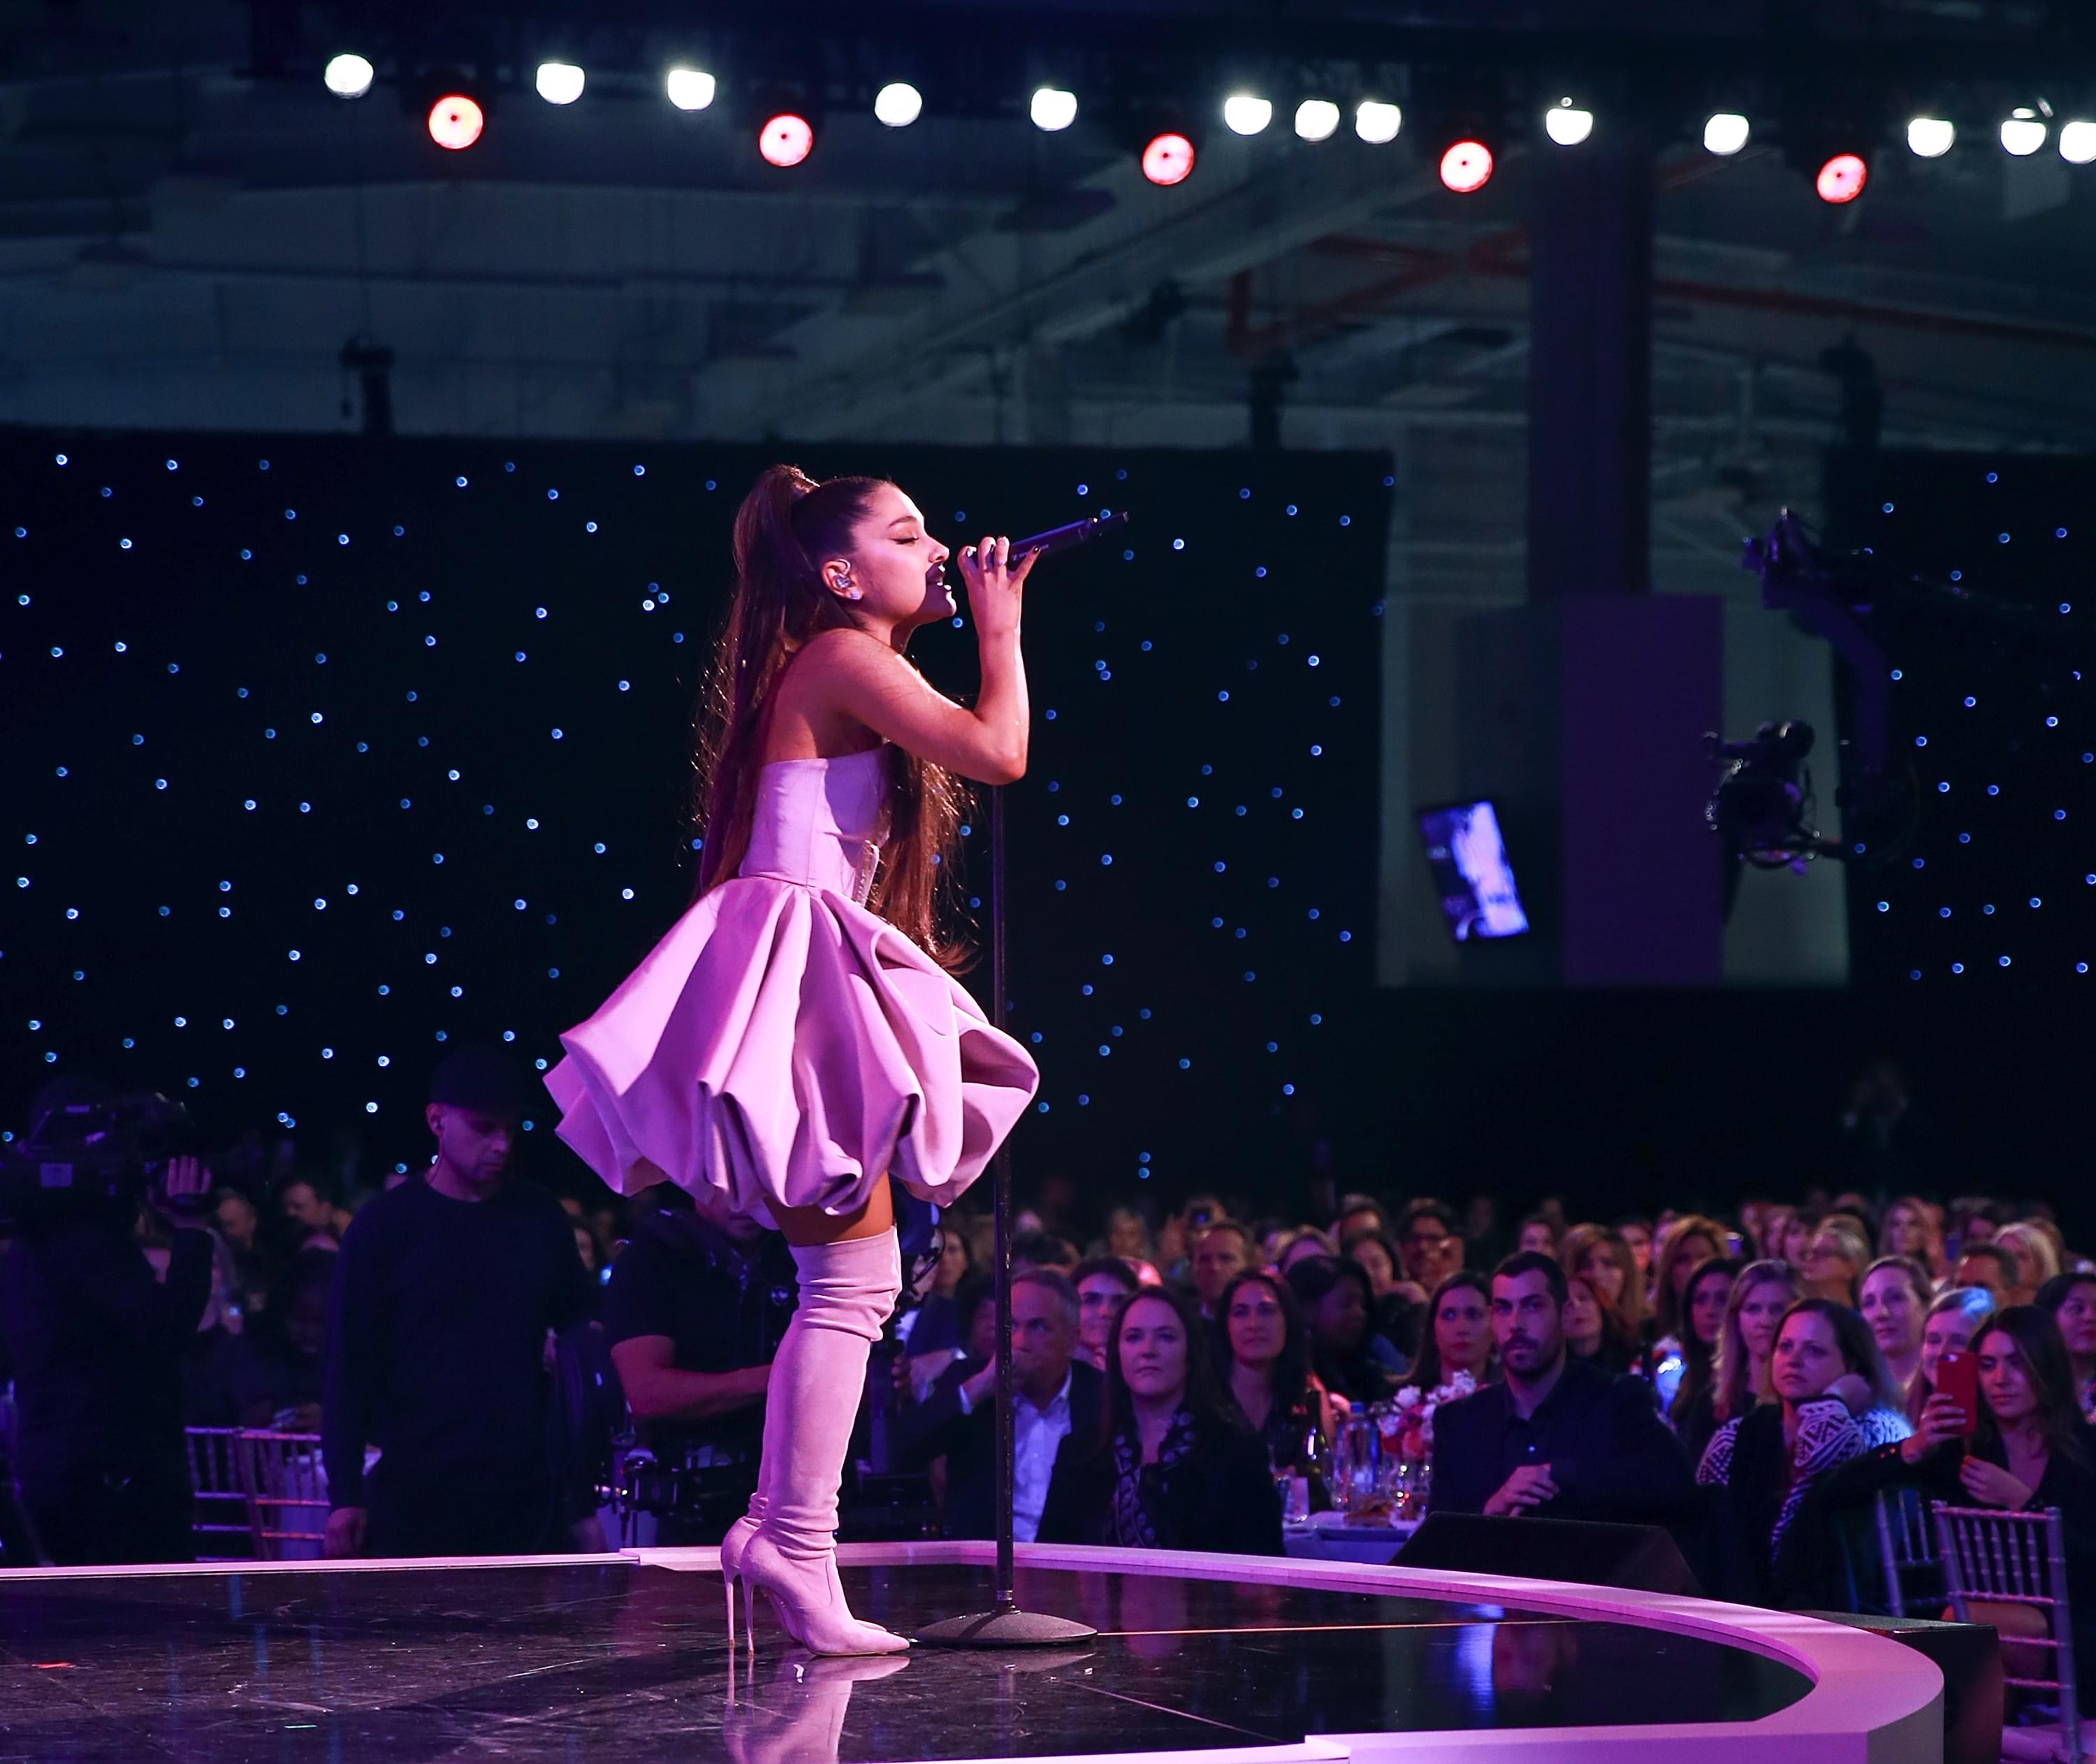 Ariana Grande Sued Over Pictures Of Herself!